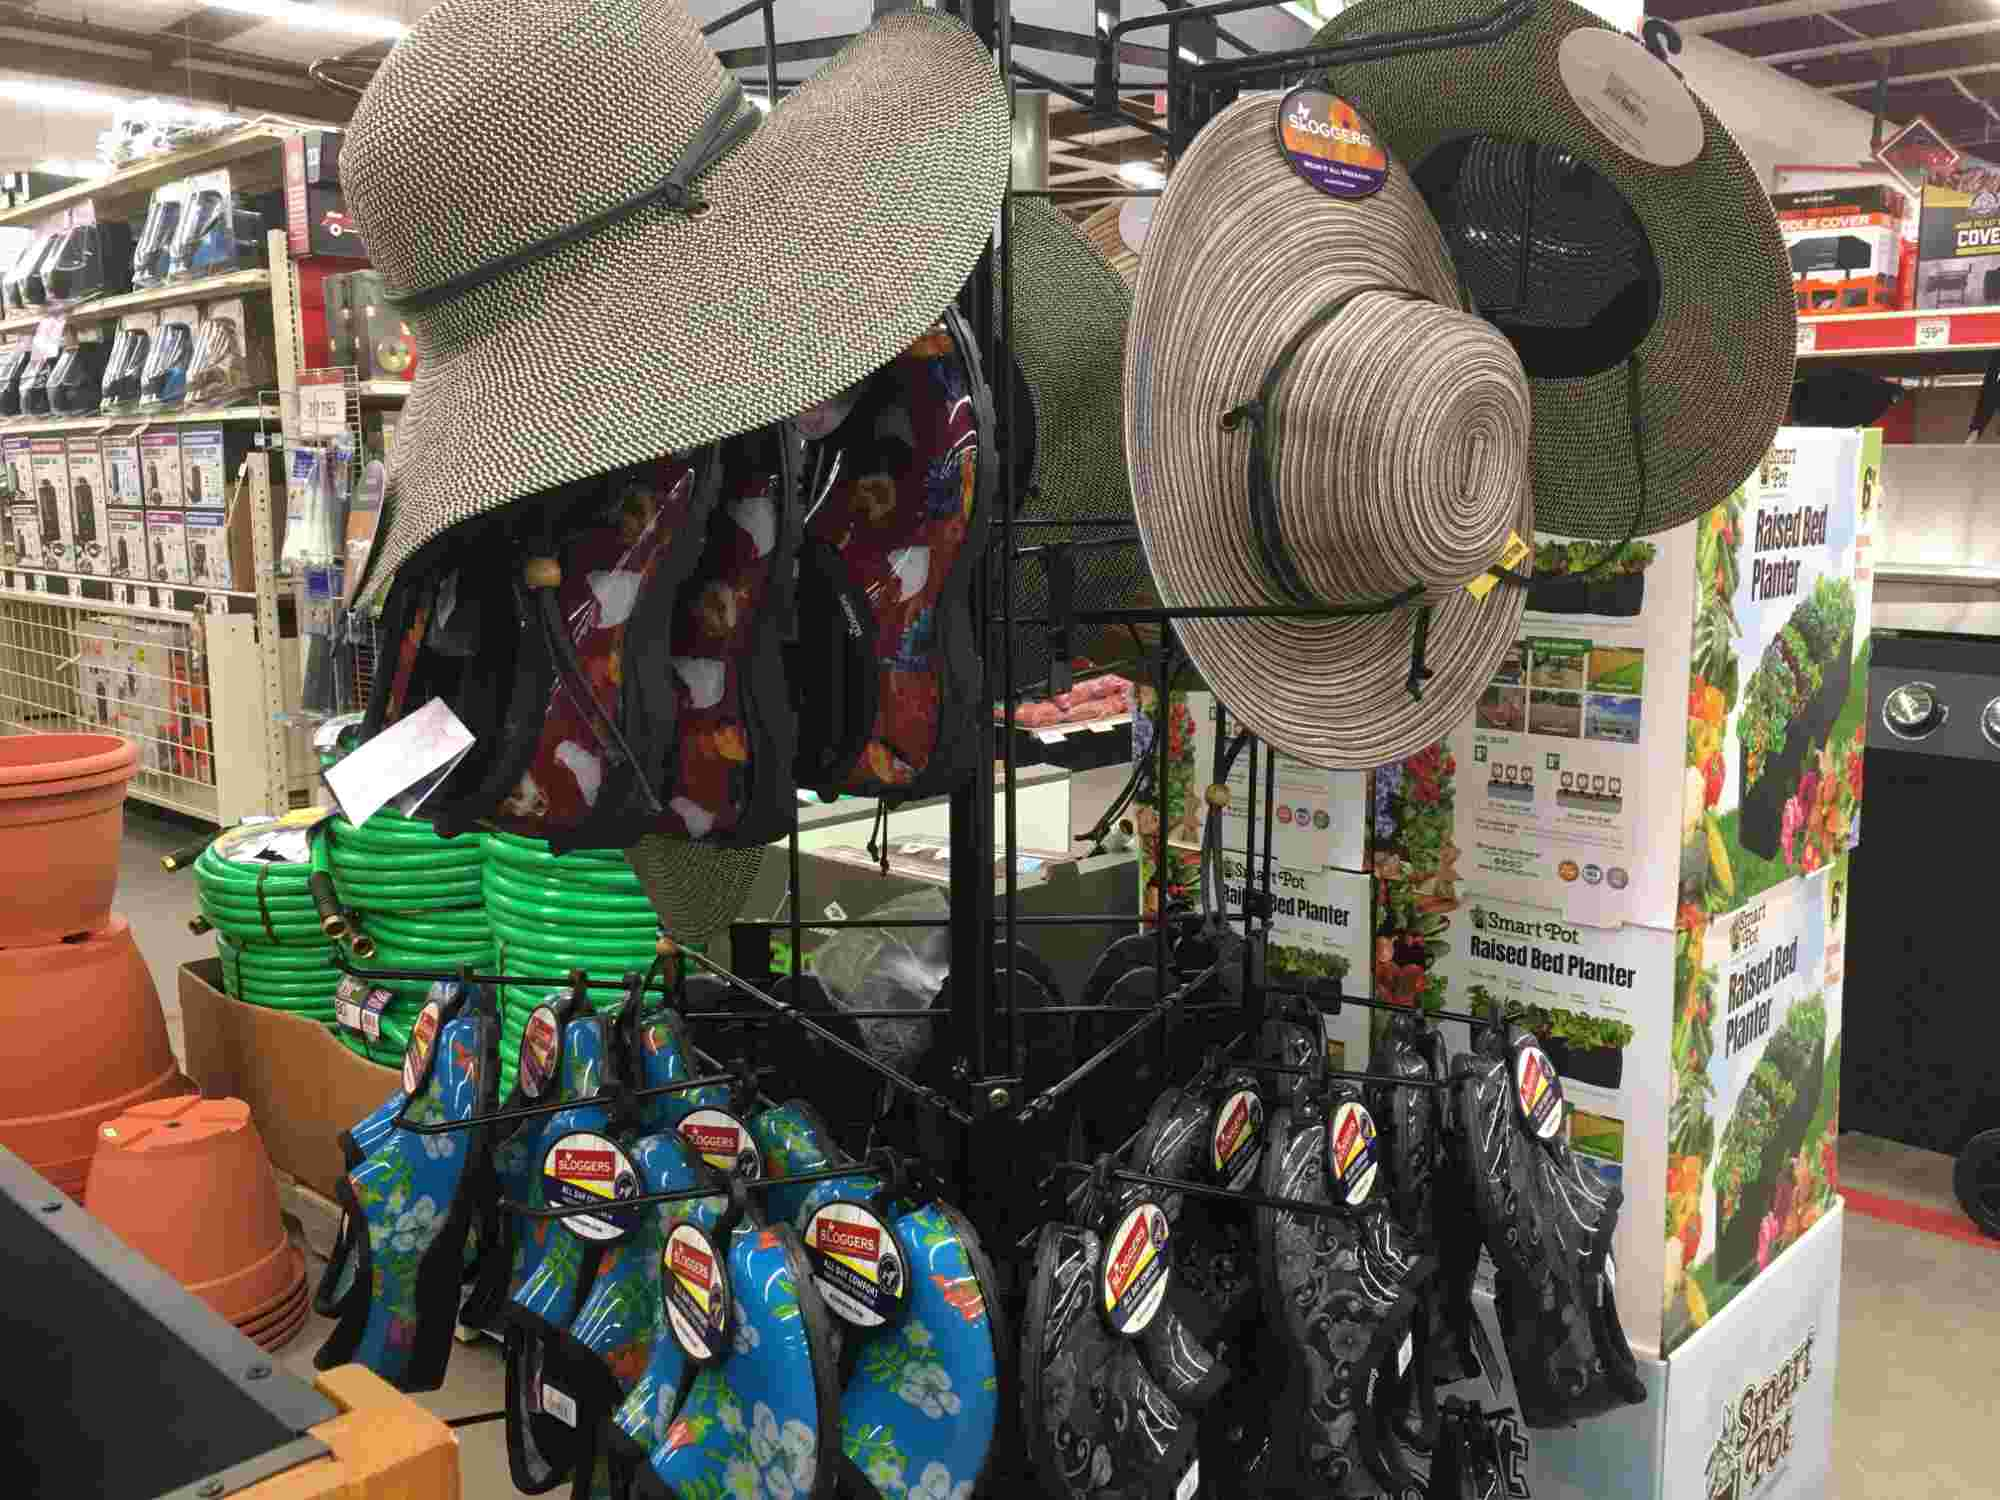 sun hats and garden sloggersyard decor at Tractor Supply in Truth or Consequences